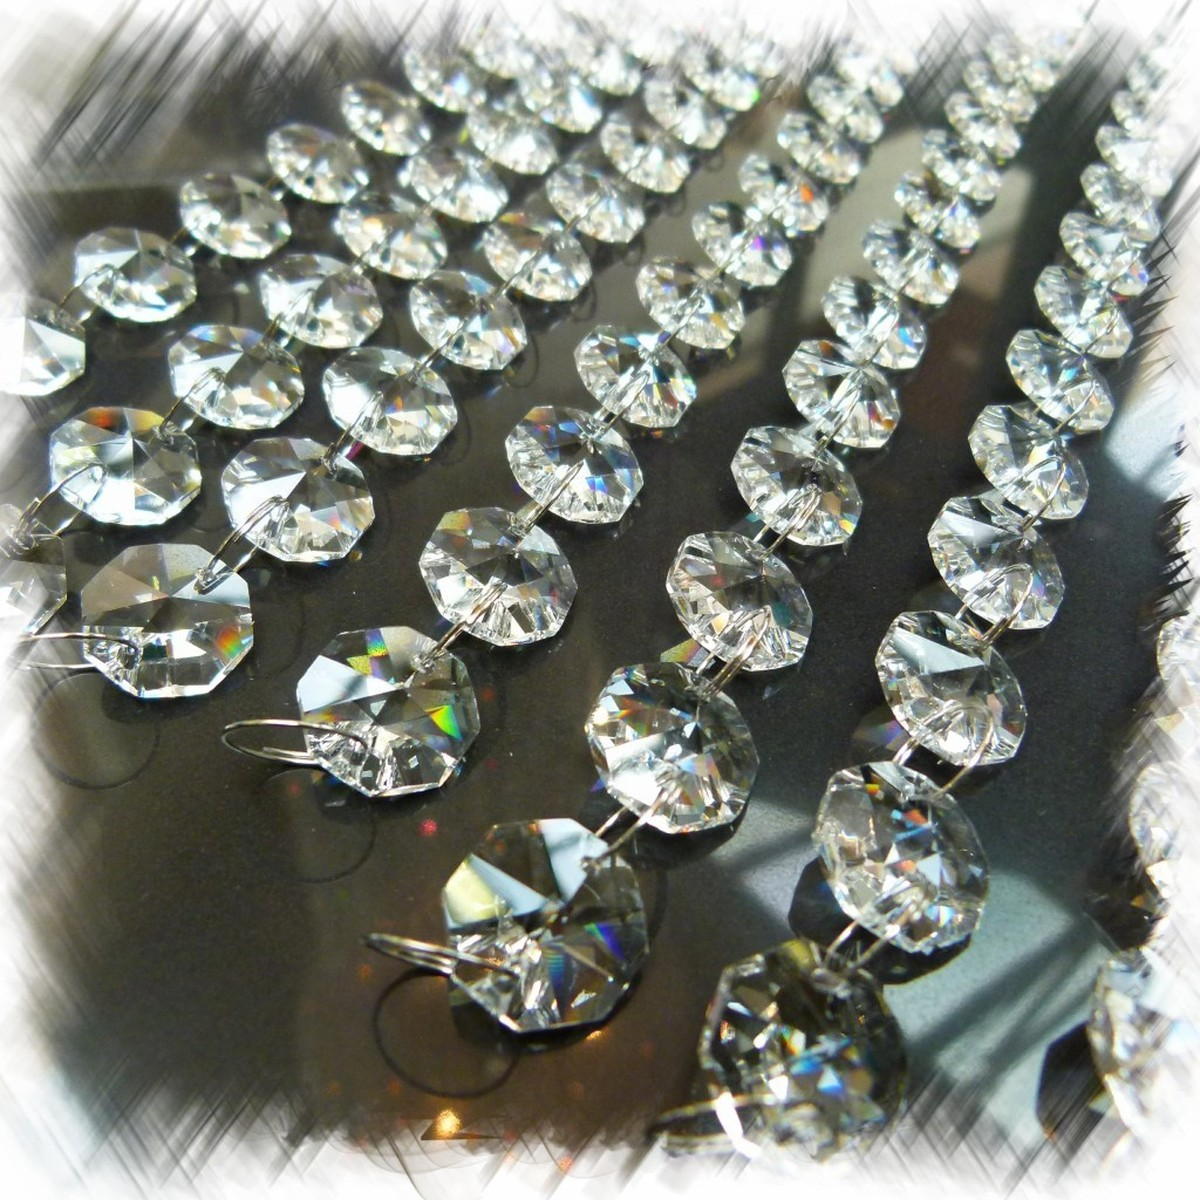 Secondhand Prop Shop Christmas 50x 1m Crystal Droplet